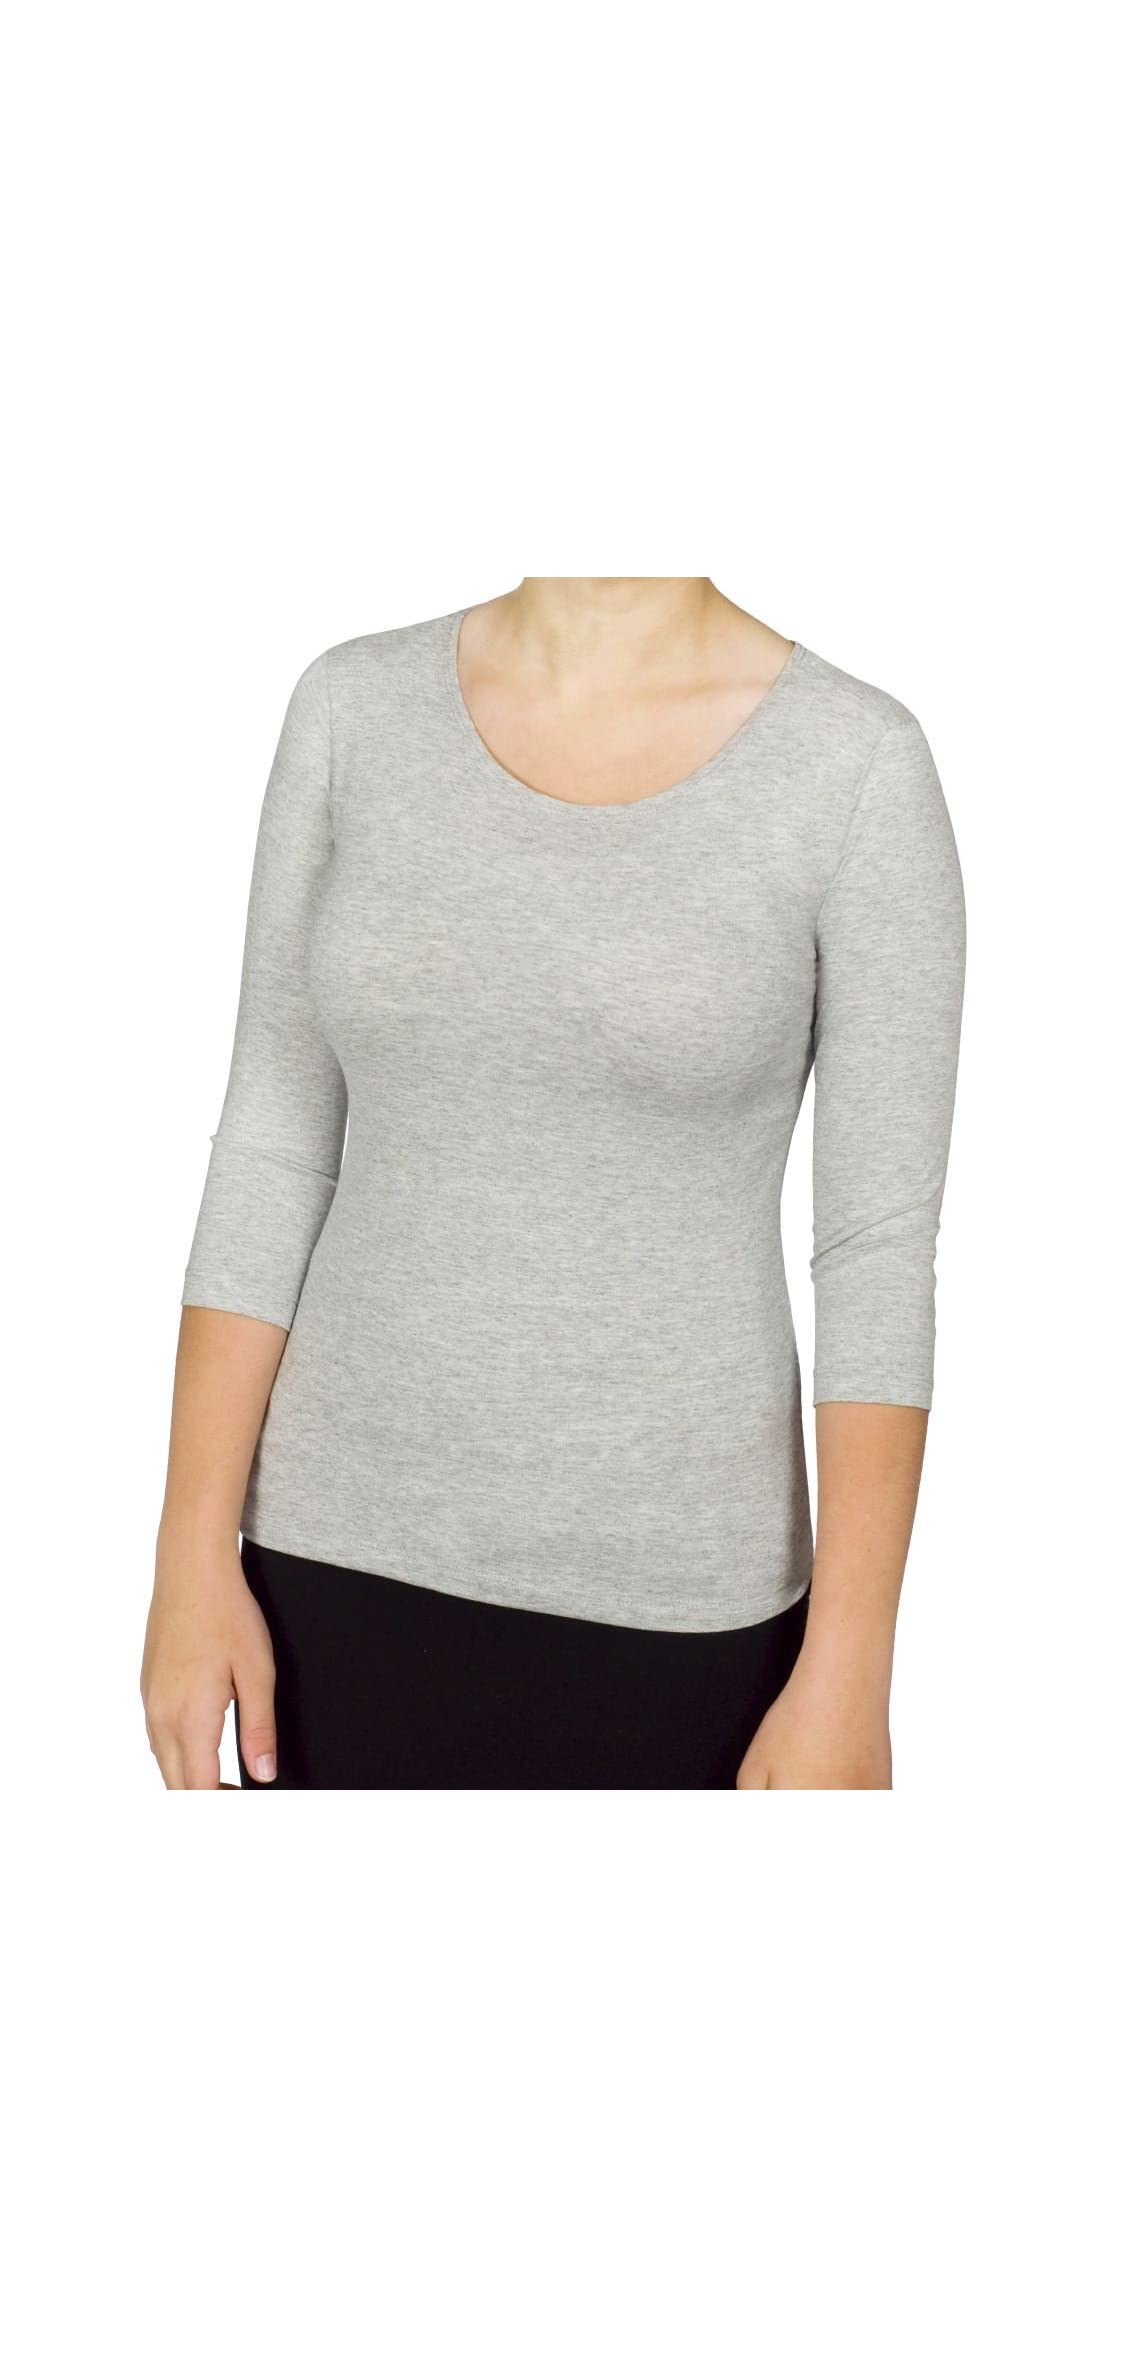 Women's - Sleeve Boat Neck Layering Knit Top